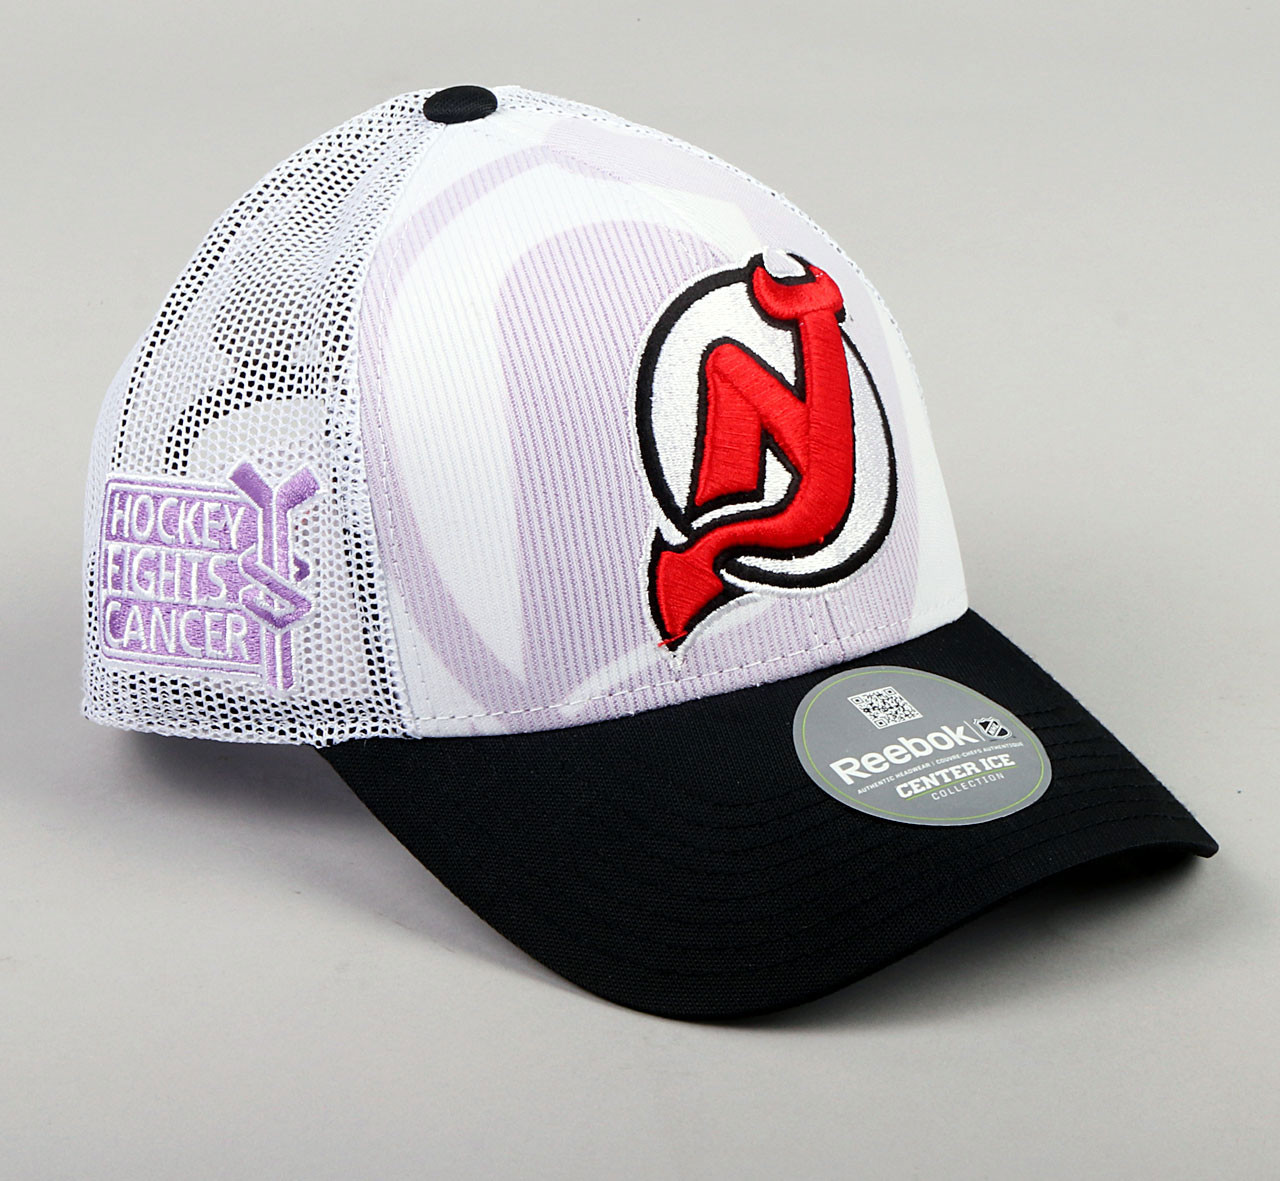 81142cd9174 ... New Jersey Devils One Size Hockey Fights Cancer Adjustable Hat. Image 1